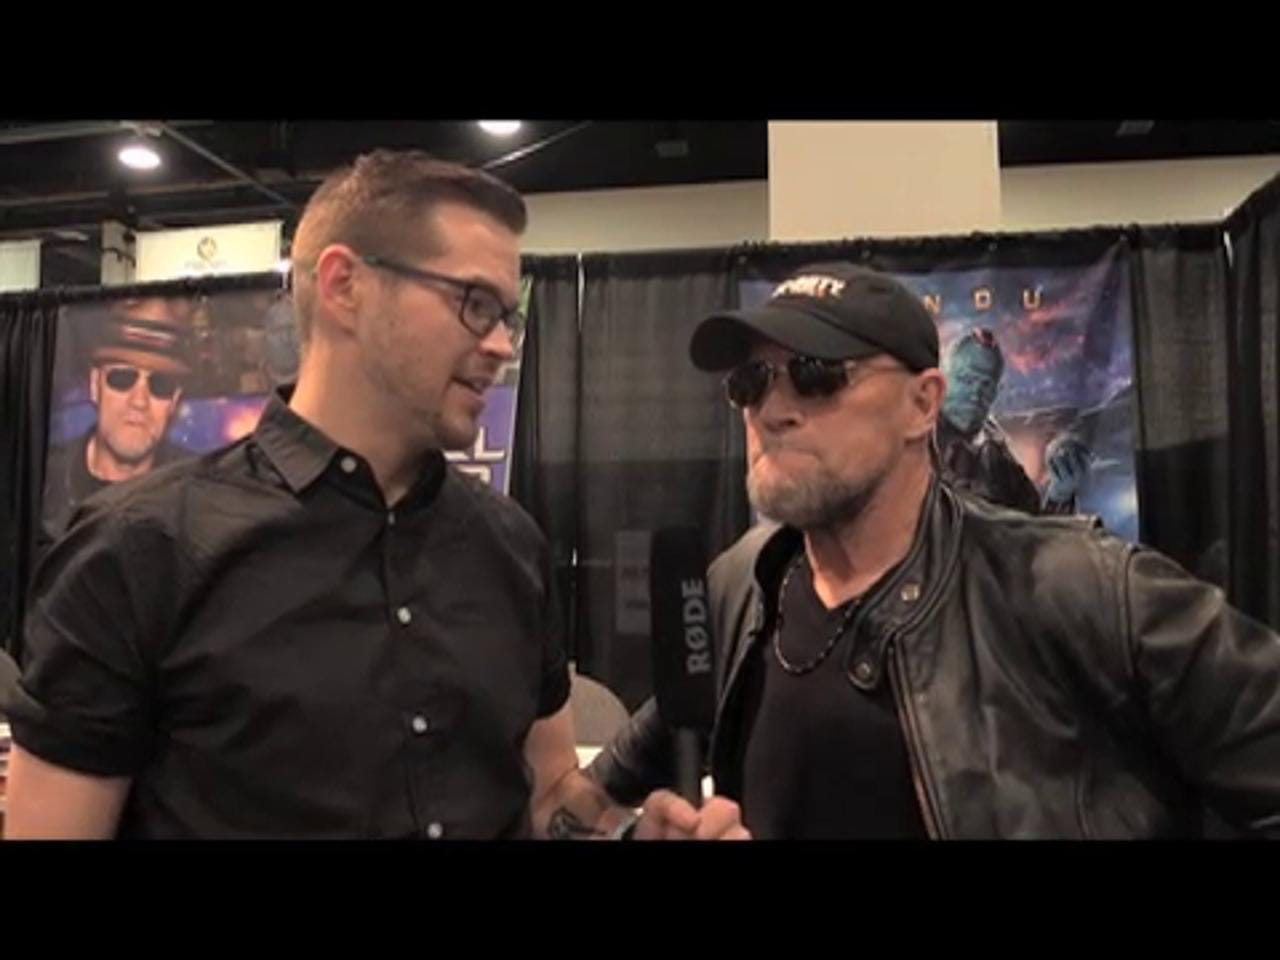 'Guardians of the Galaxy's' Michael Rooker took a break from filming to attend the 2016 Las Vegas Wizard World convention. Although he couldn't divulge secrets about the movie, he did point out he is blue in the film.